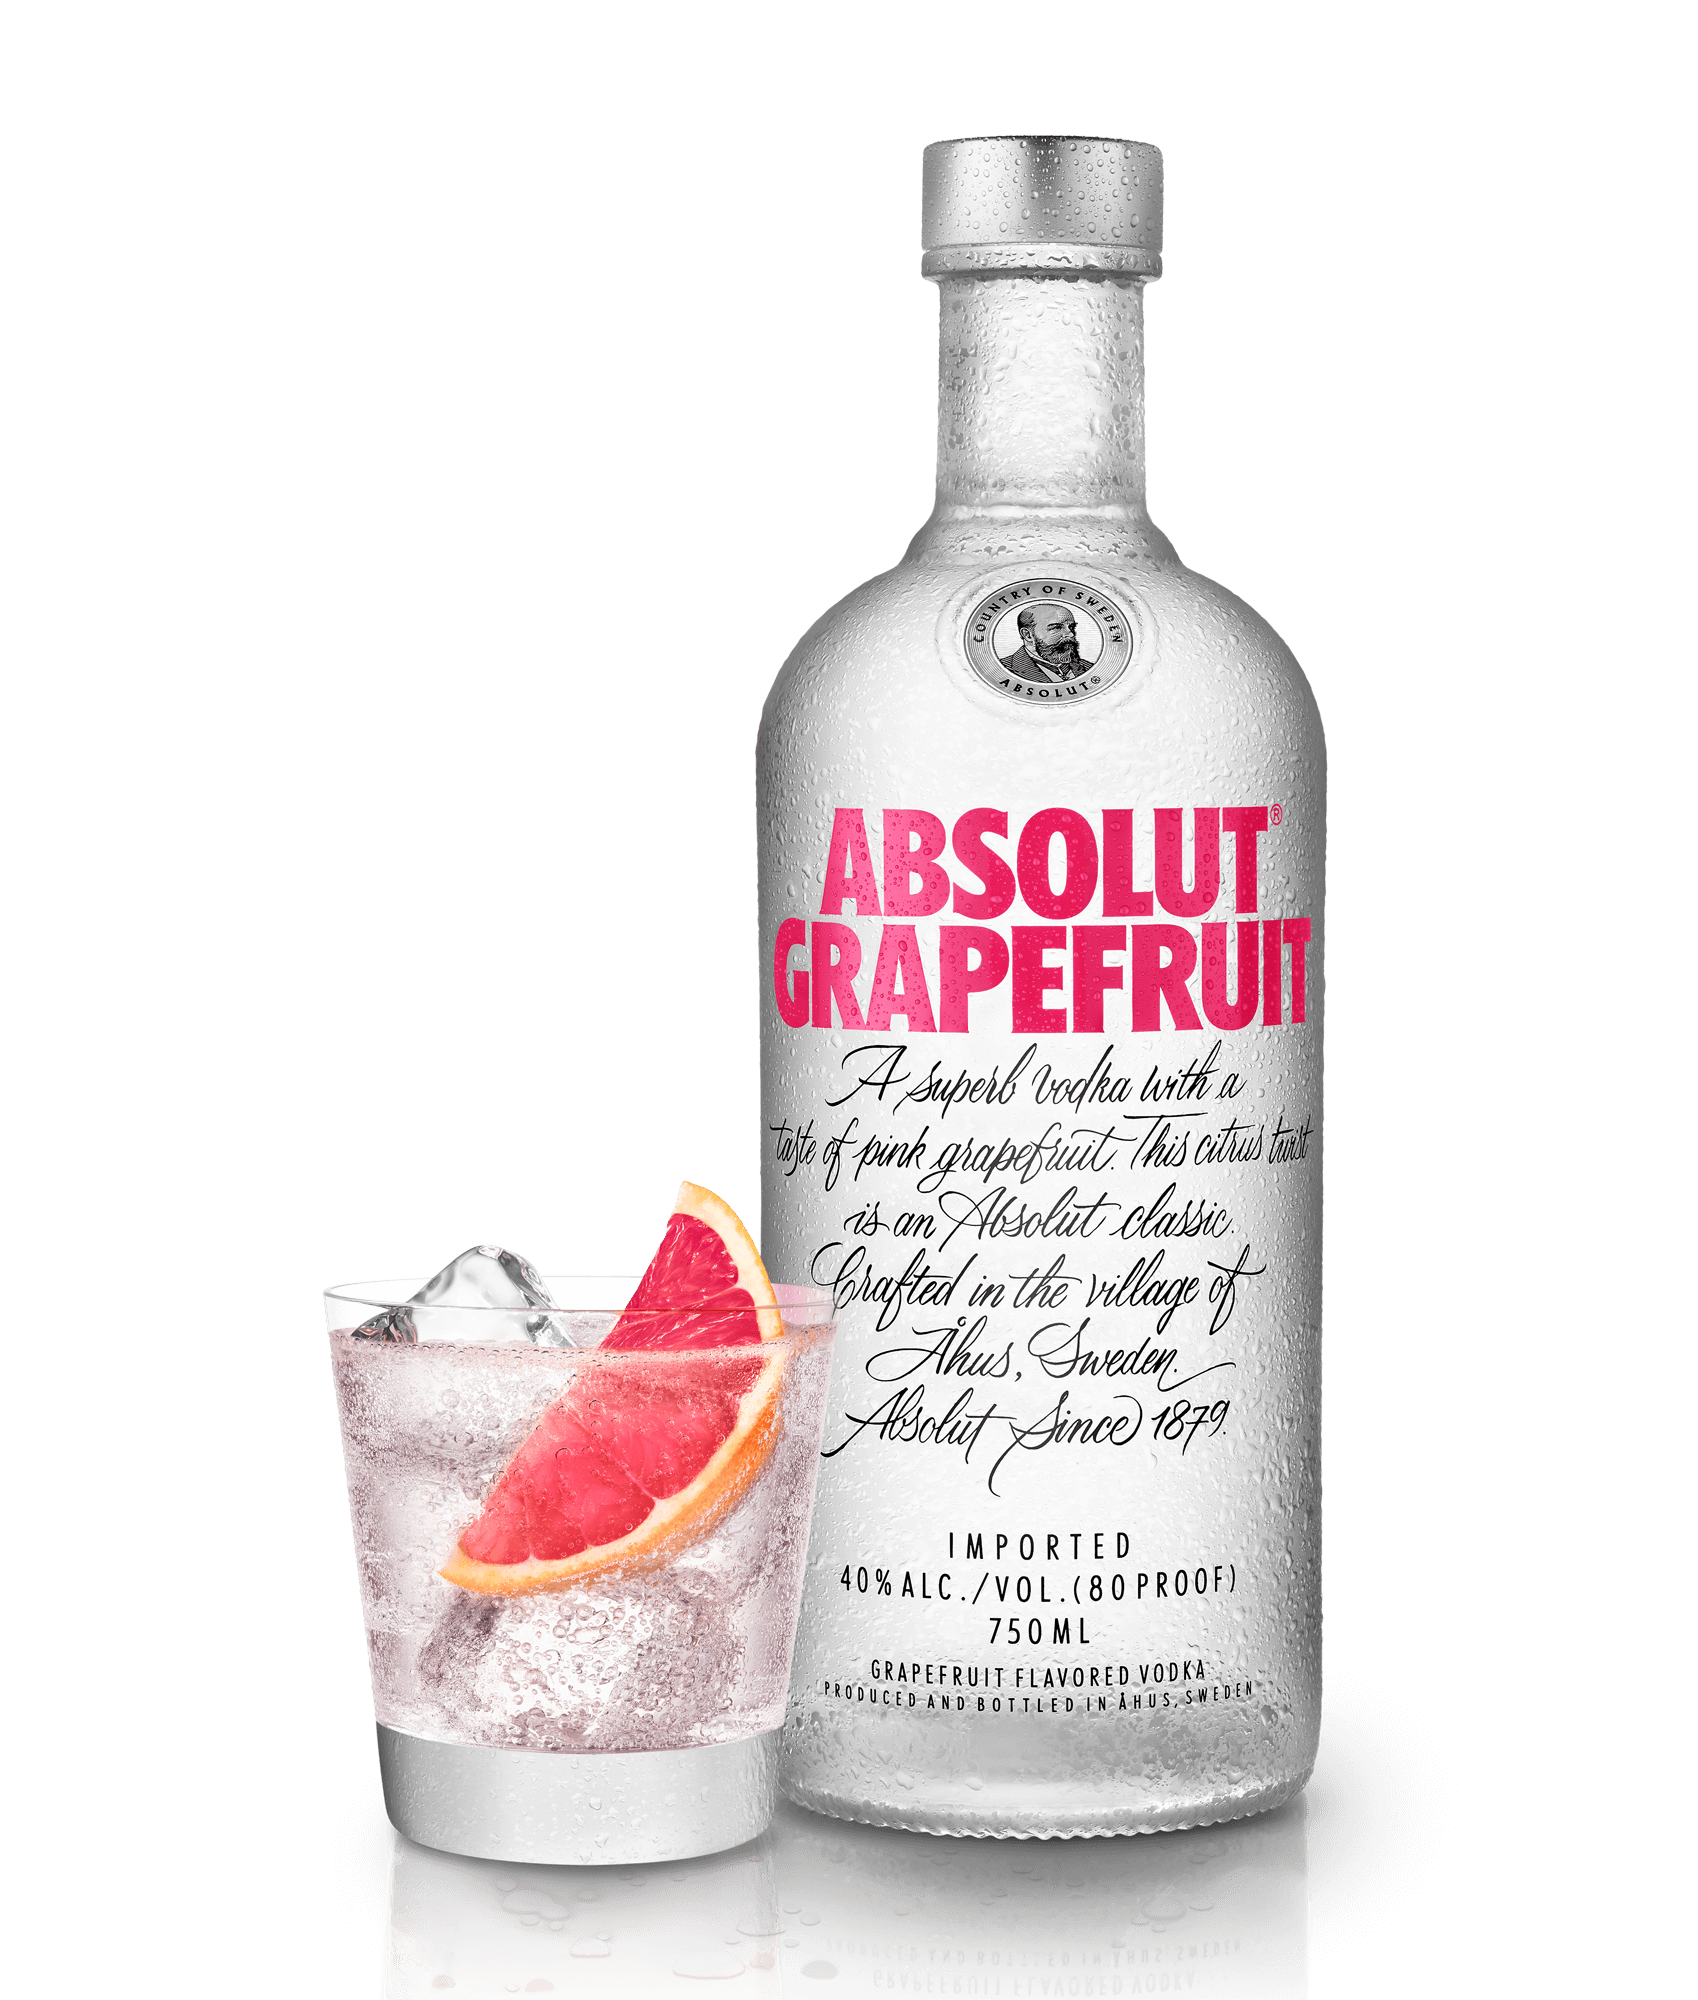 When Absolut announces a limited-edition expression, it's a big deal. When they announce a permanent addition to one of their core lineups, it's massive news. Absolut Grapefruit is a refreshing, versatile and welcome addition to the Absolut citrus line.